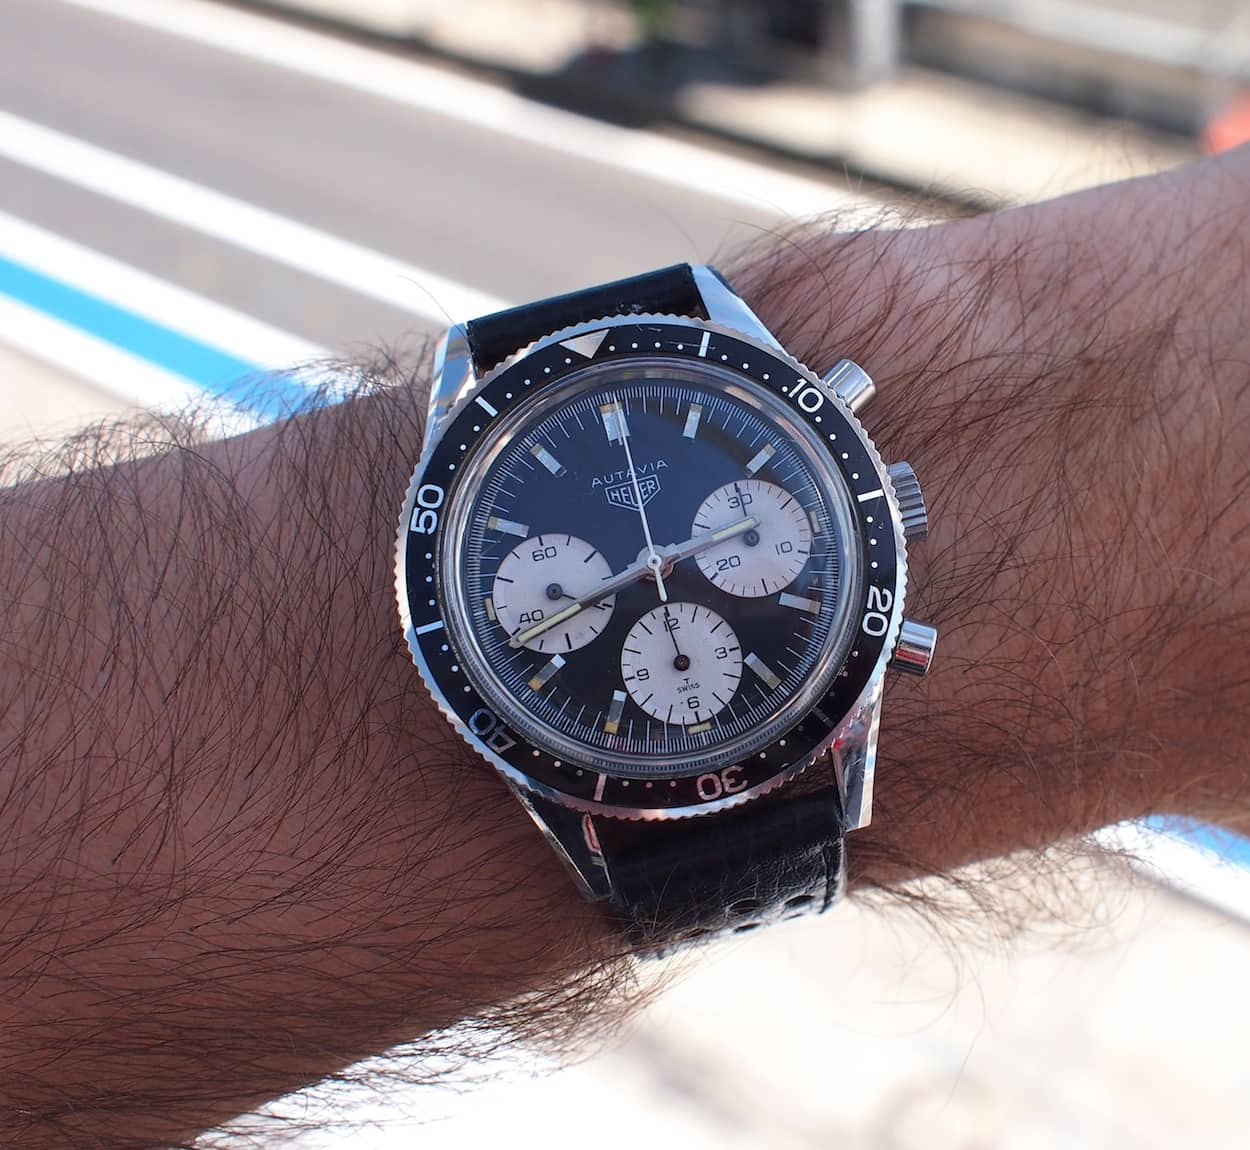 Heuer Autavia 2446 on the wrist at the track